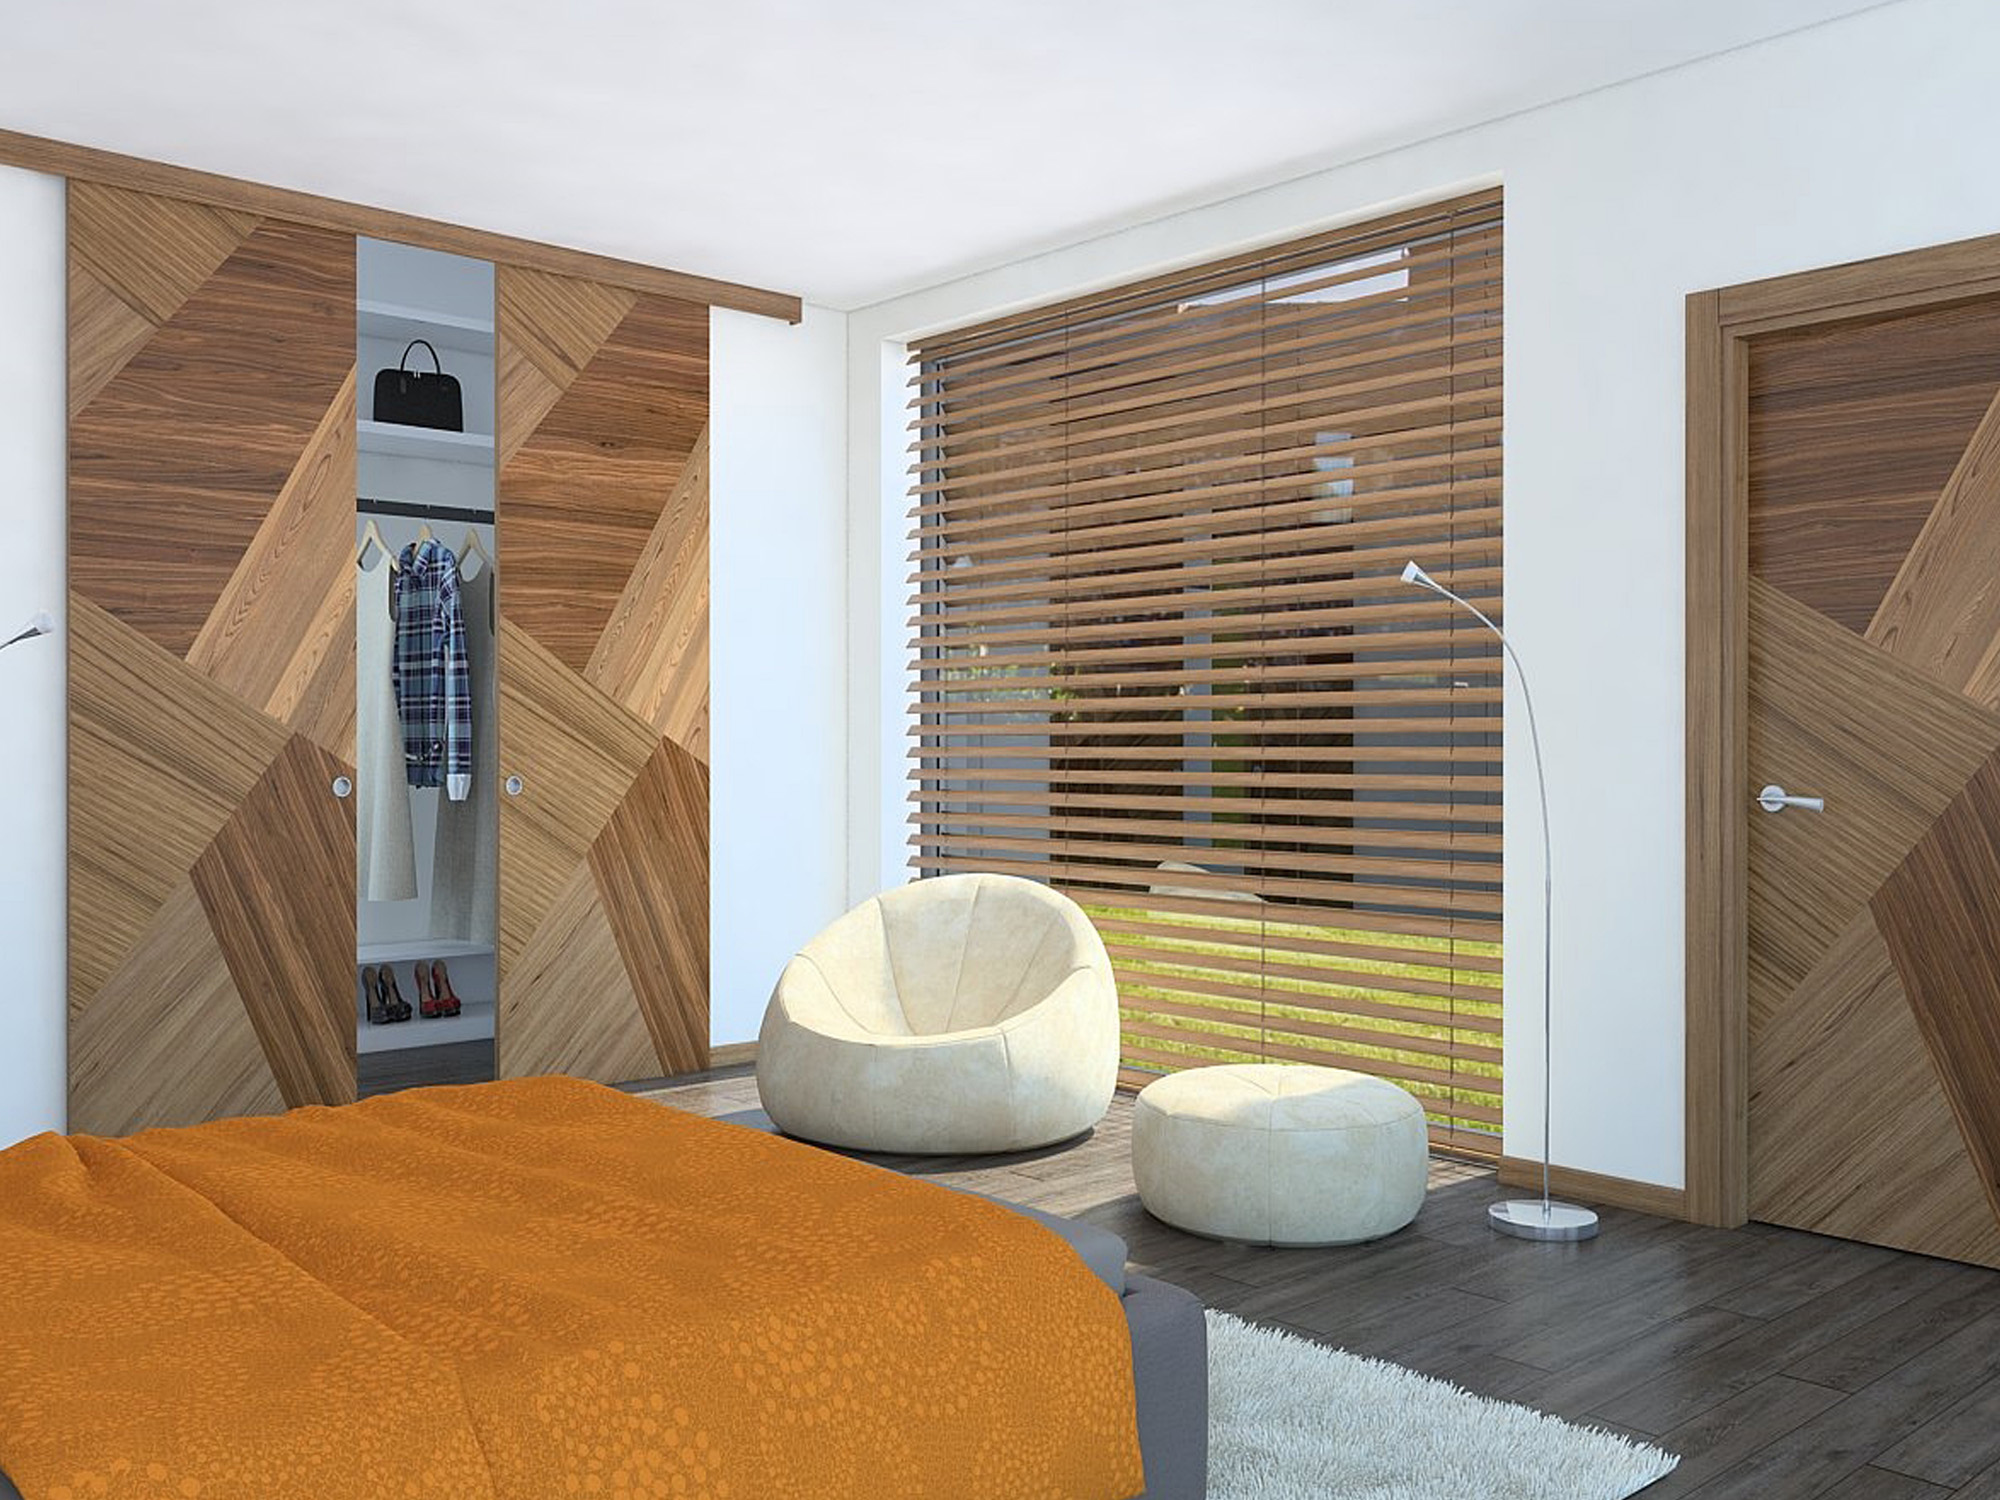 Goodwood Walnut & Custom made Wood Internal Doors | Modern Flush Walnut Wood Interior ...